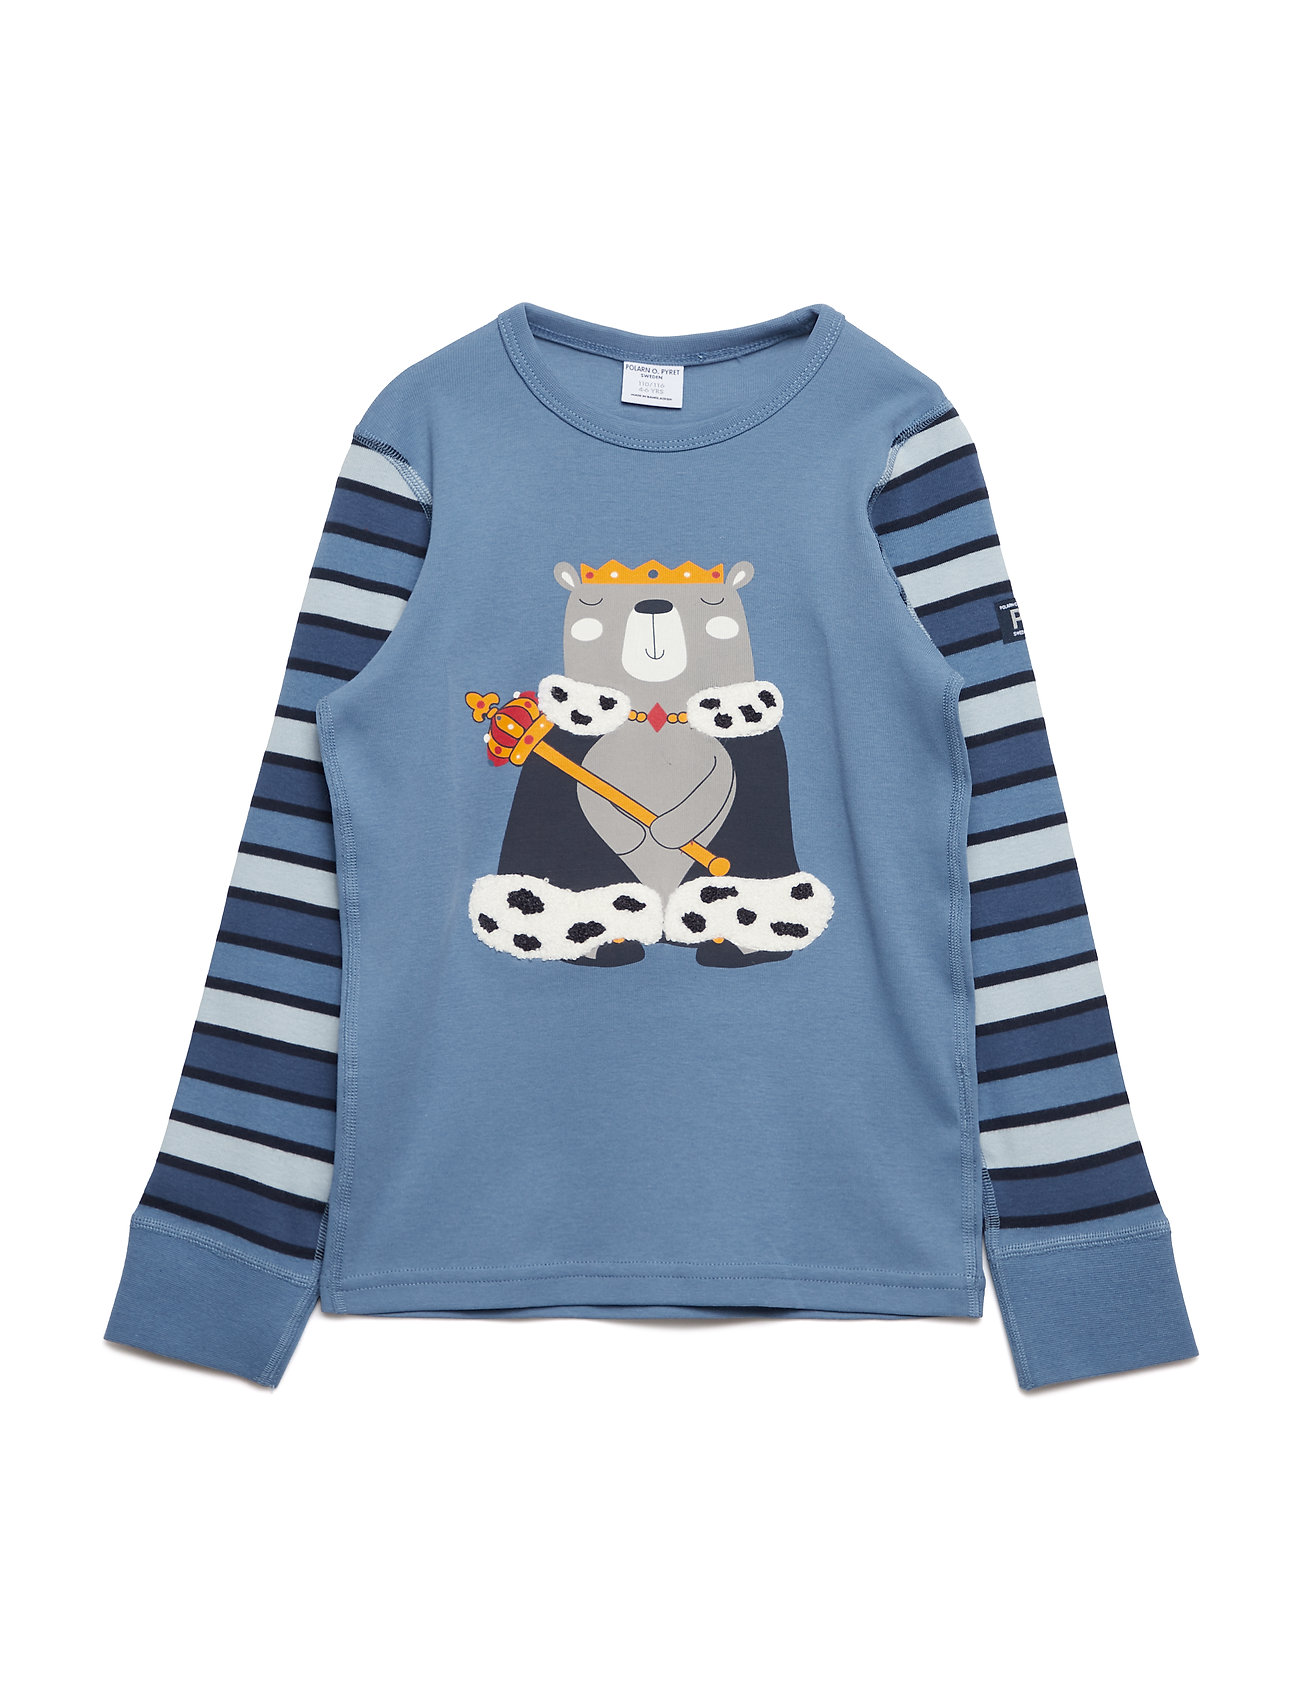 Polarn O. Pyret Top Long Sleeve application Pre-School